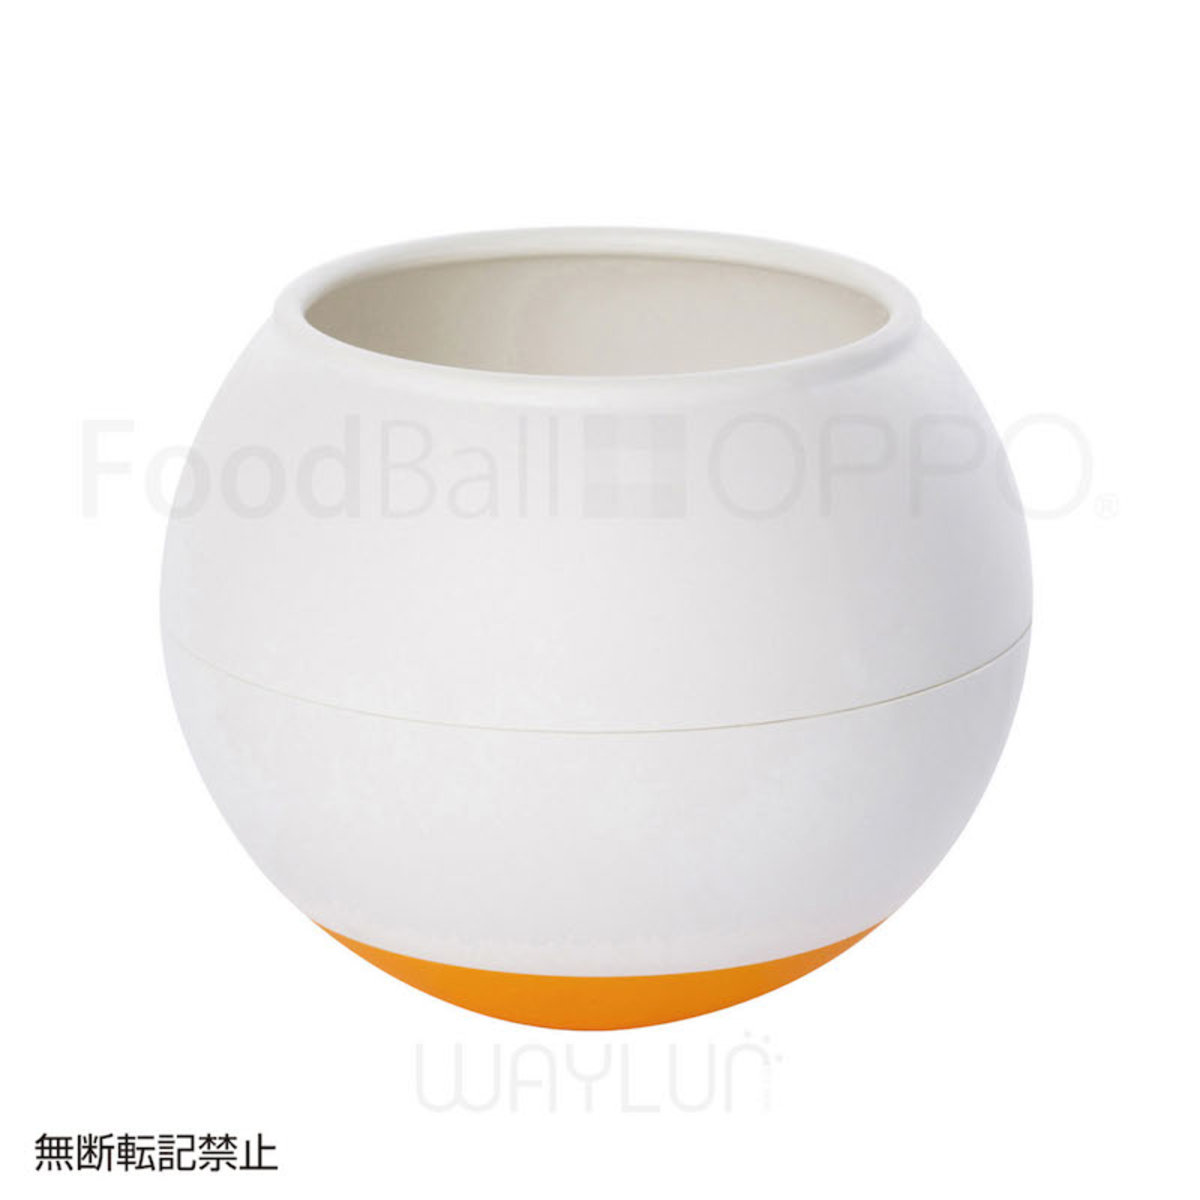 FoodBall Regular (Orange)